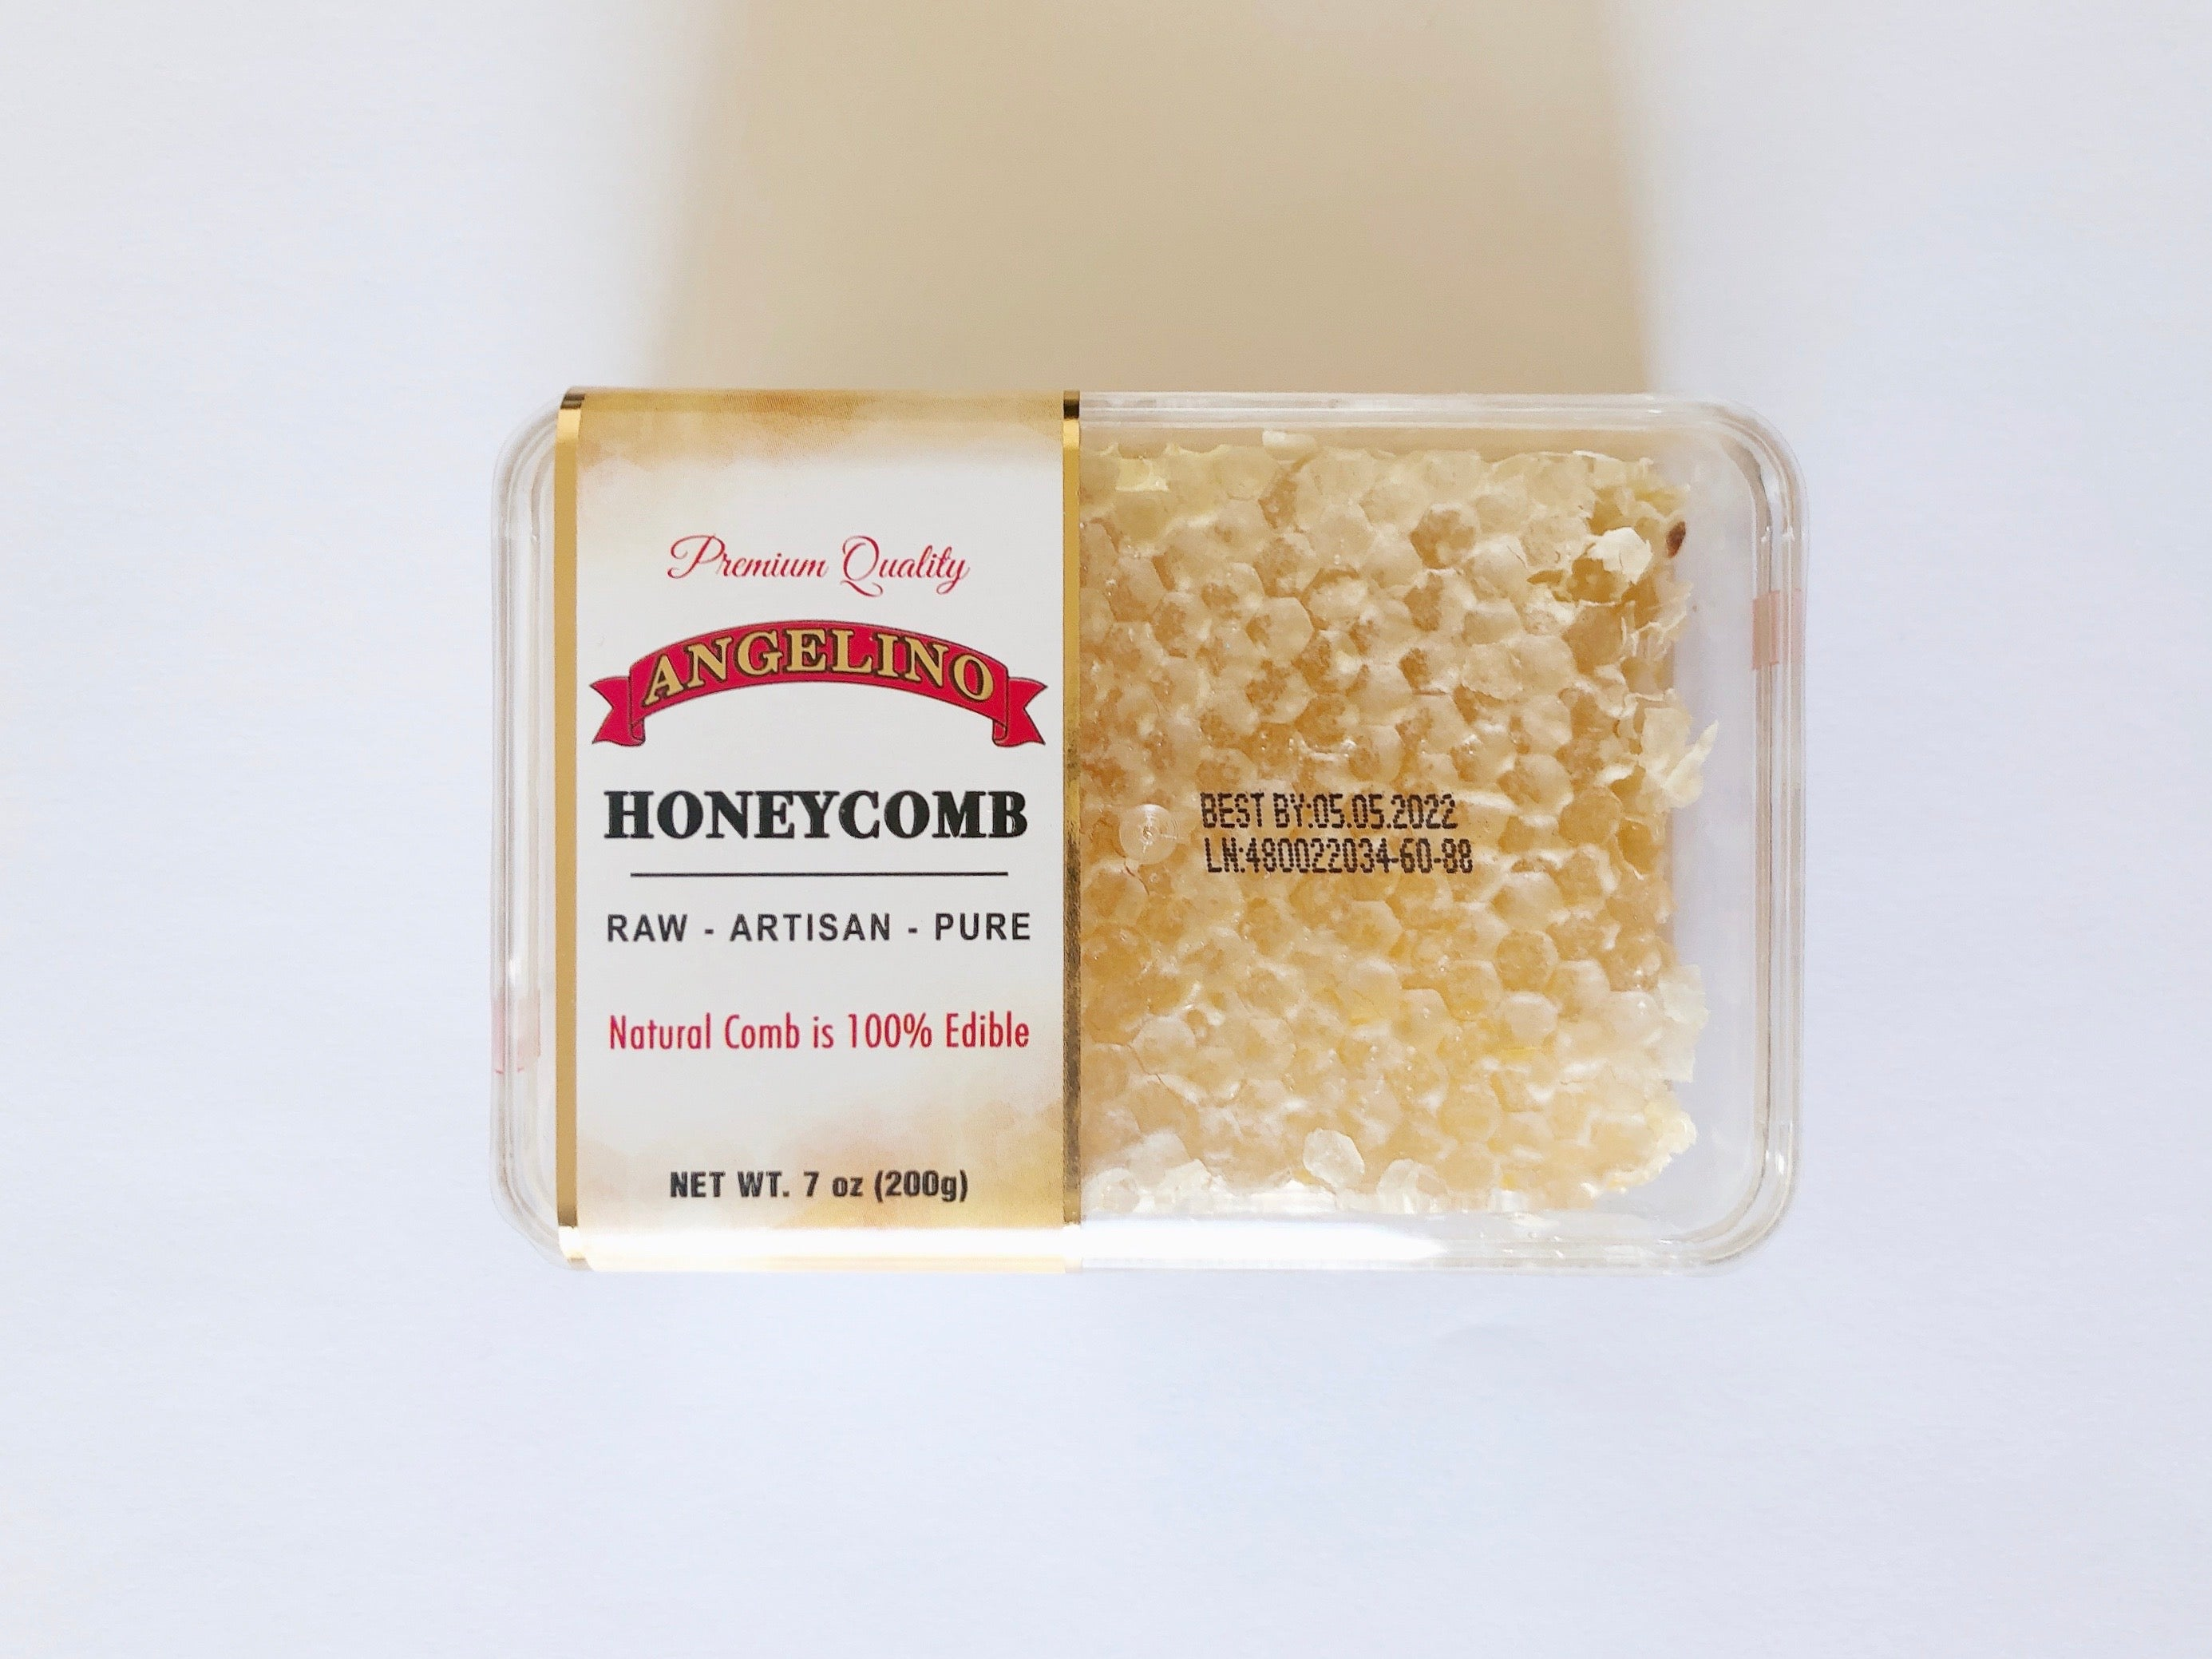 Artisan Pure Honeycomb